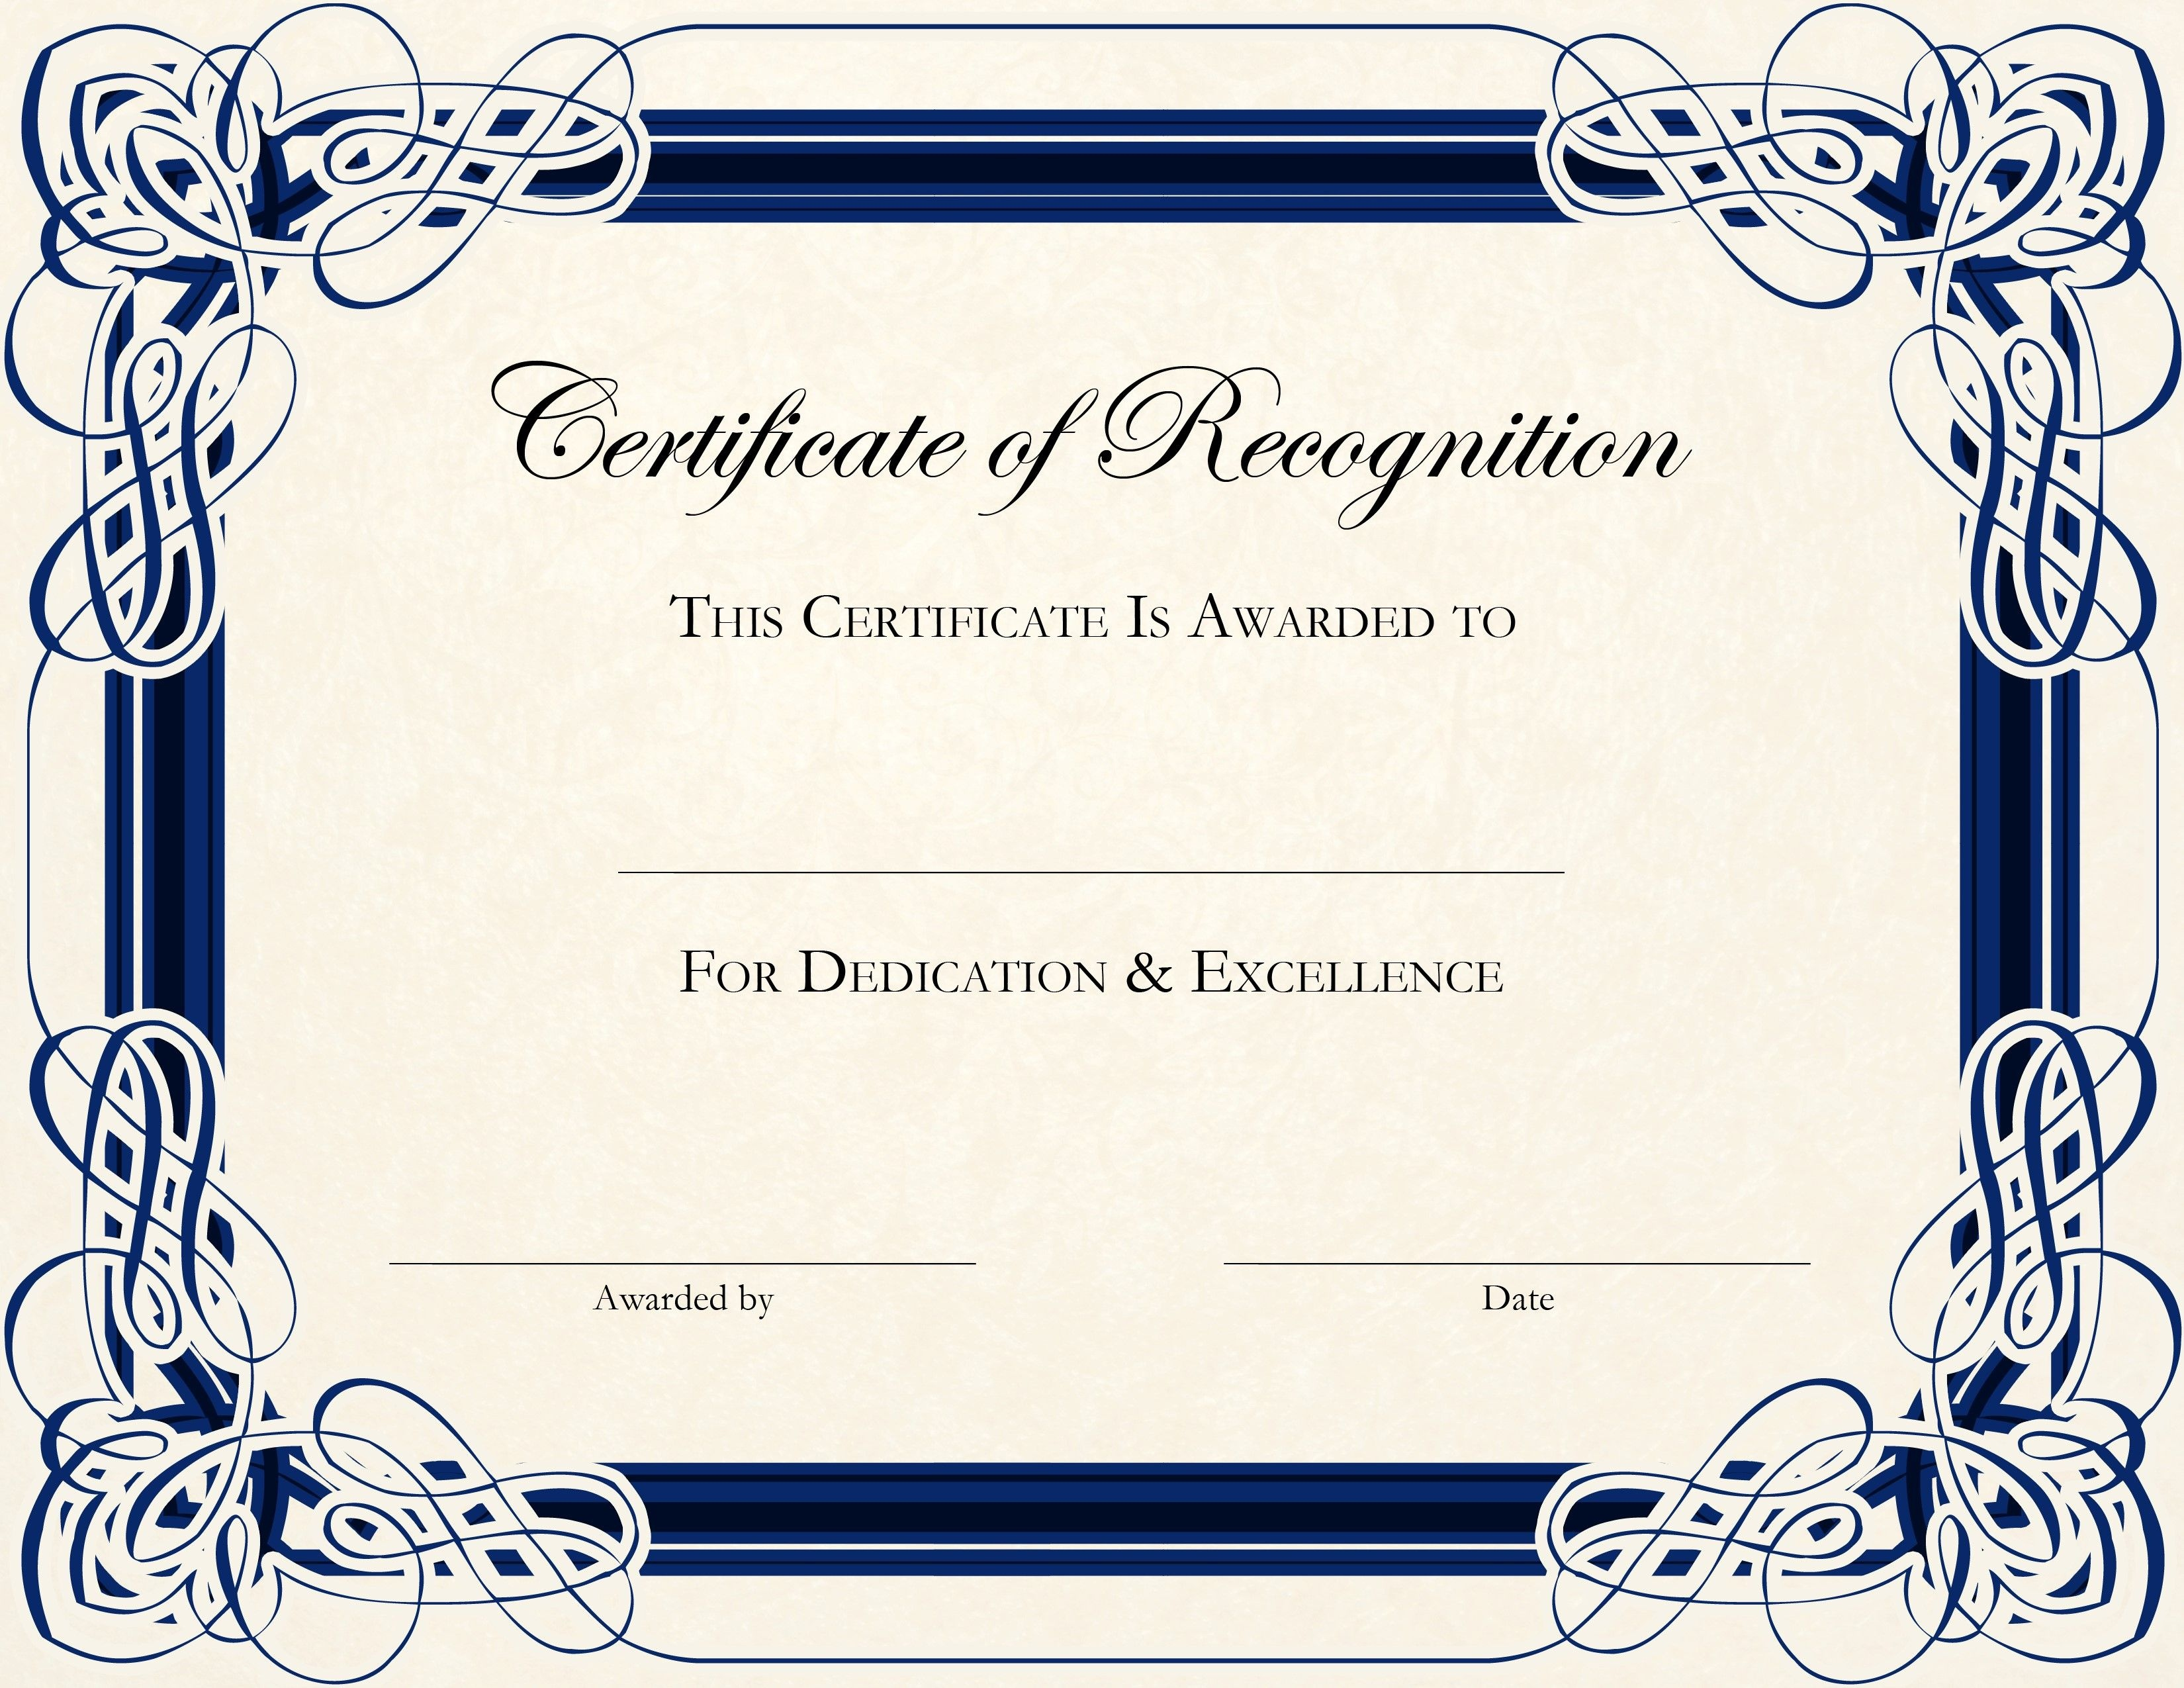 Free Printable Certificate Templates For Teachers | Besttemplate123 - Free Printable Diploma Template